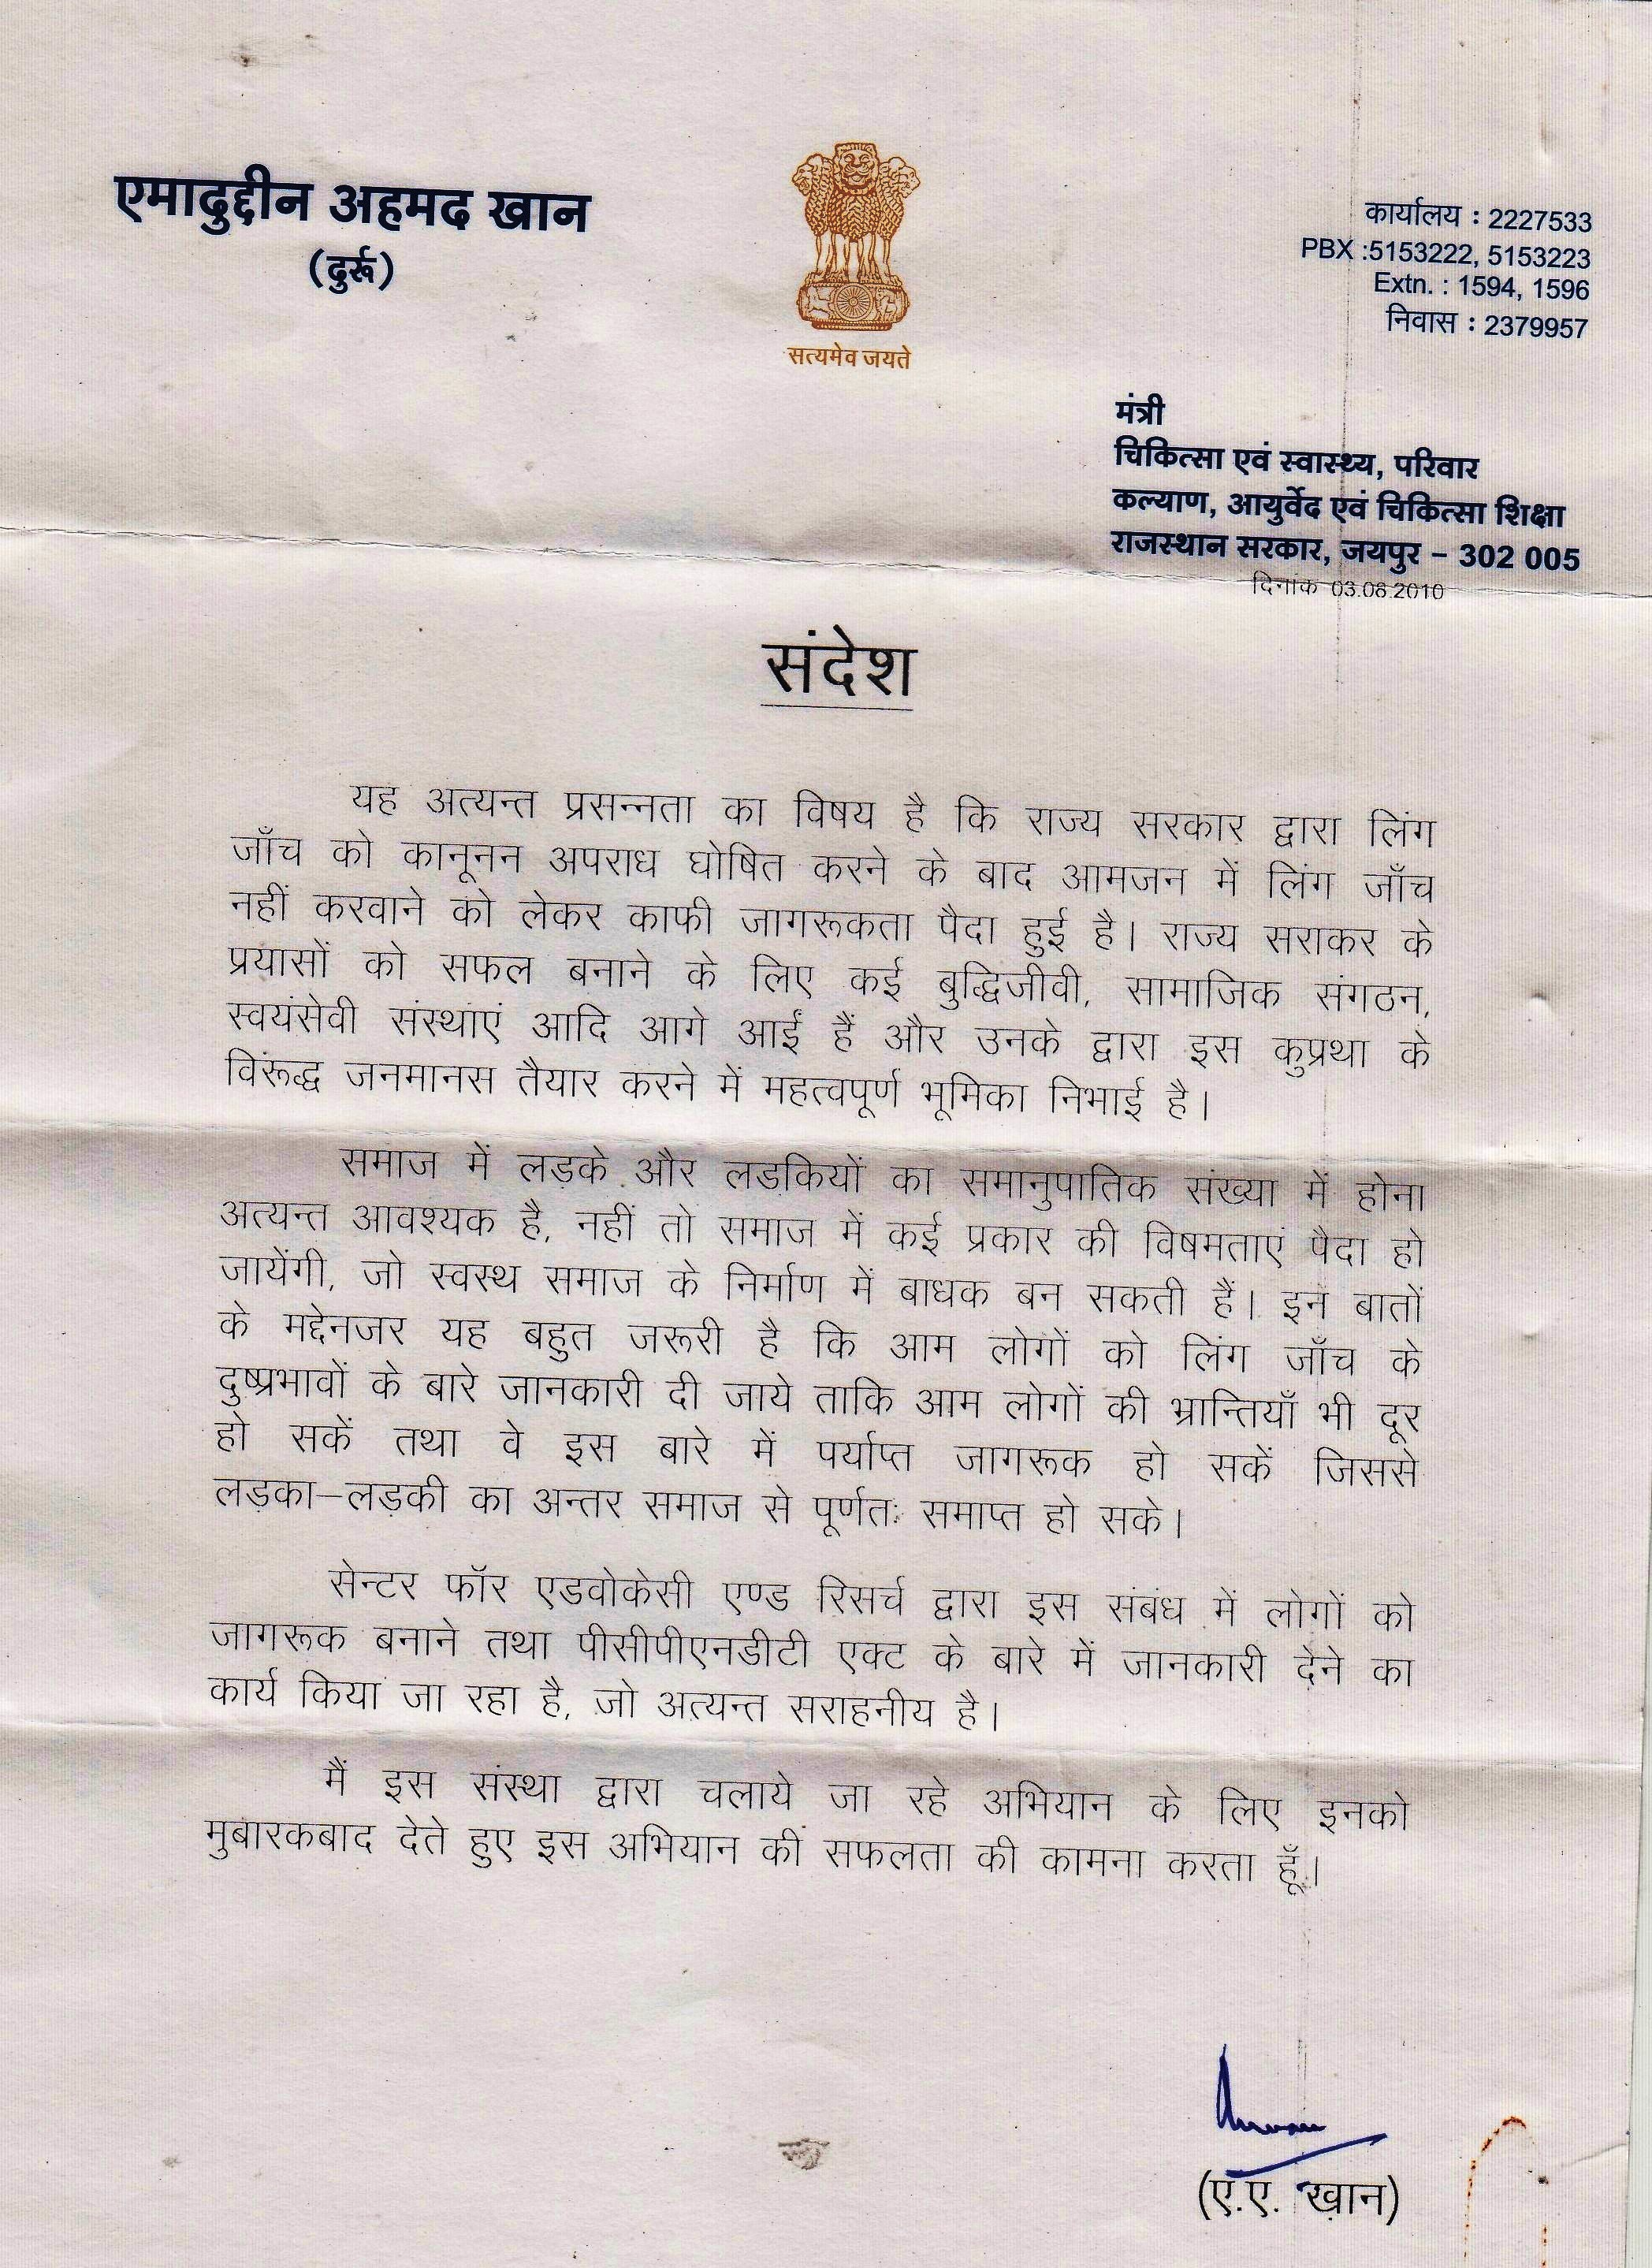 On August 3, 2010, CFAR received Letter of Appreciation from Mr. A.A. Khan, Department of Health and Family Welfare, Government of Rajasthan for spreading awareness about PCPNDT Act and Stopping Sex Determination.